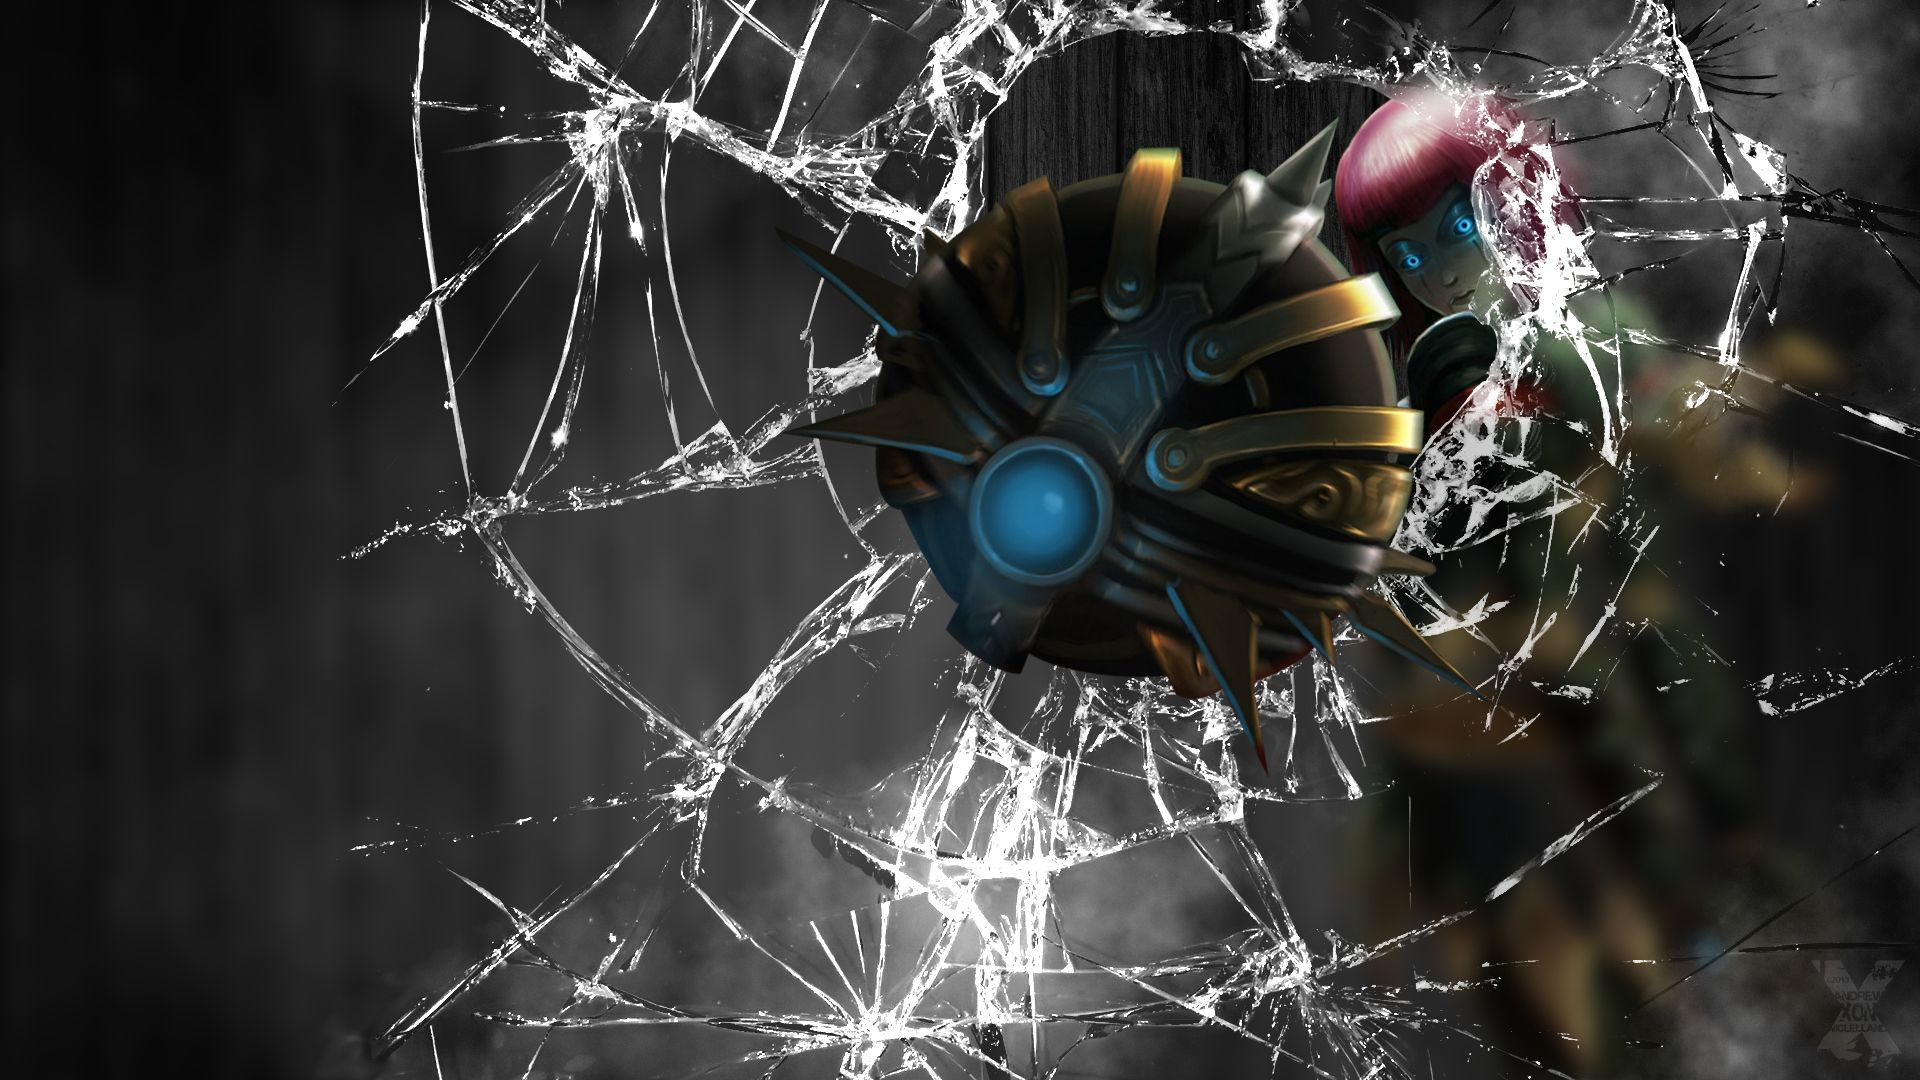 1920x1080 Crack Screen Broken Window Wallpaper Orianna League of Le.